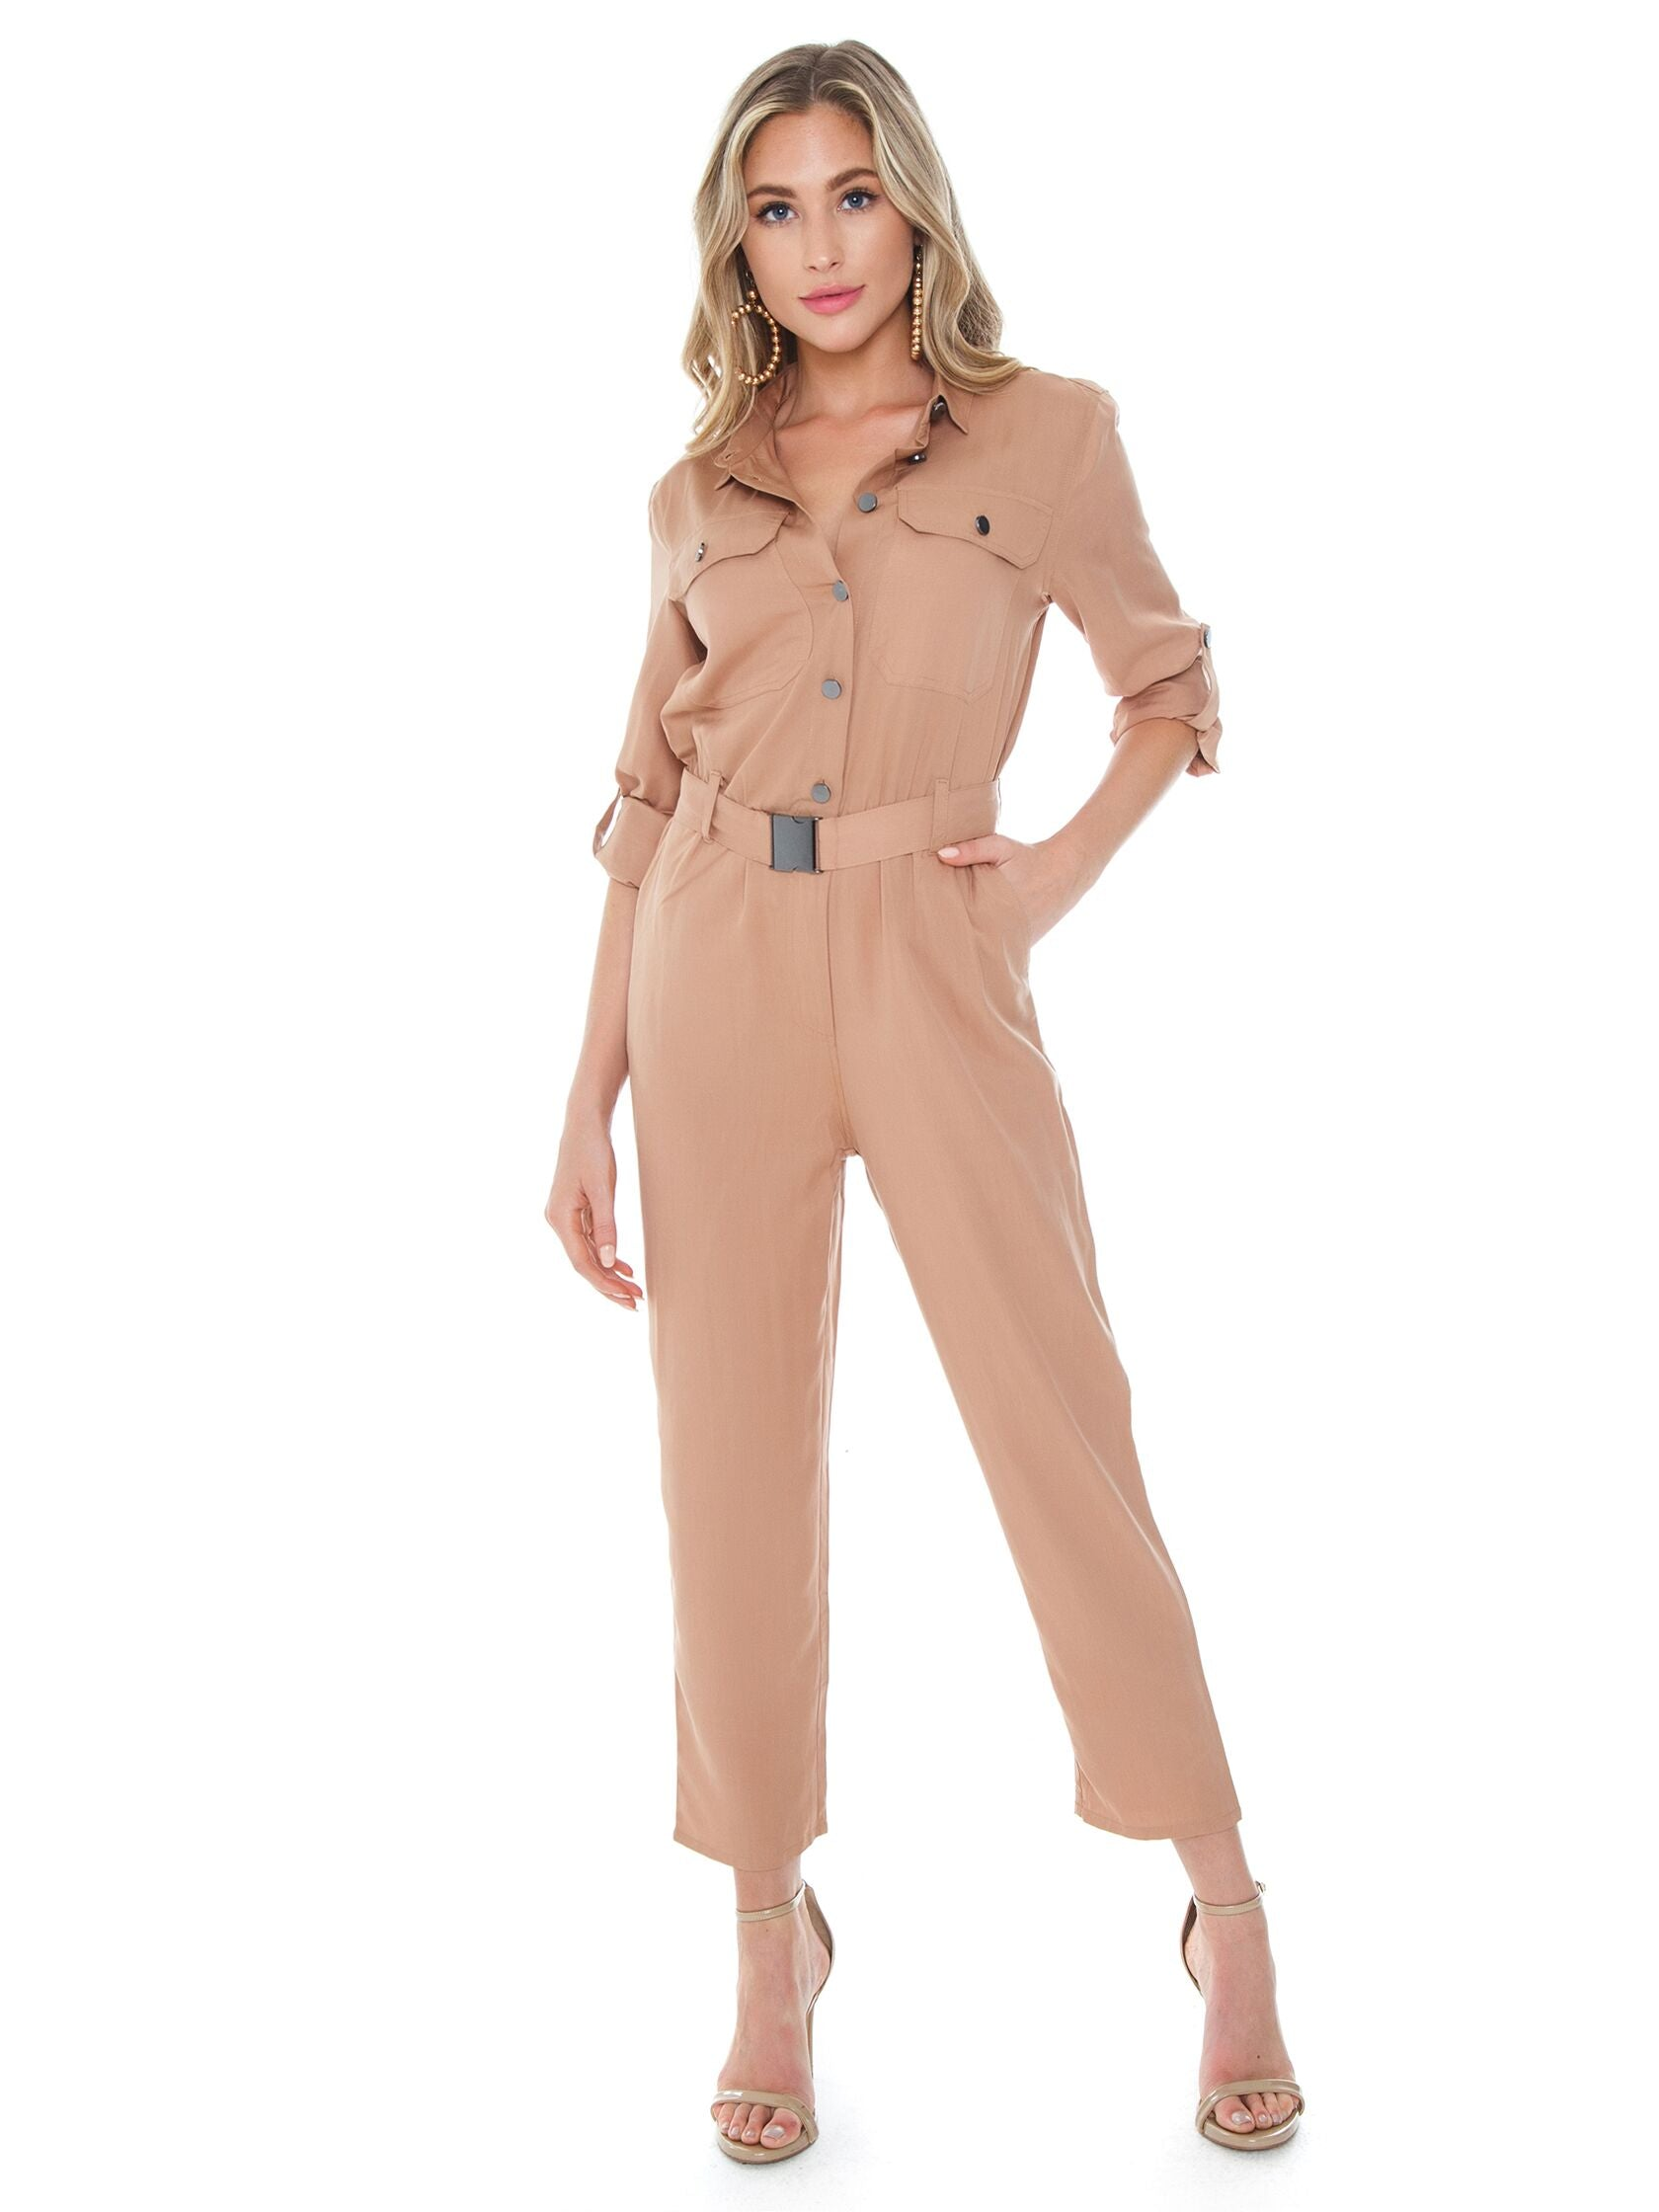 Girl outfit in a jumpsuit rental from BARDOT called Buckle Up Jumpsuit